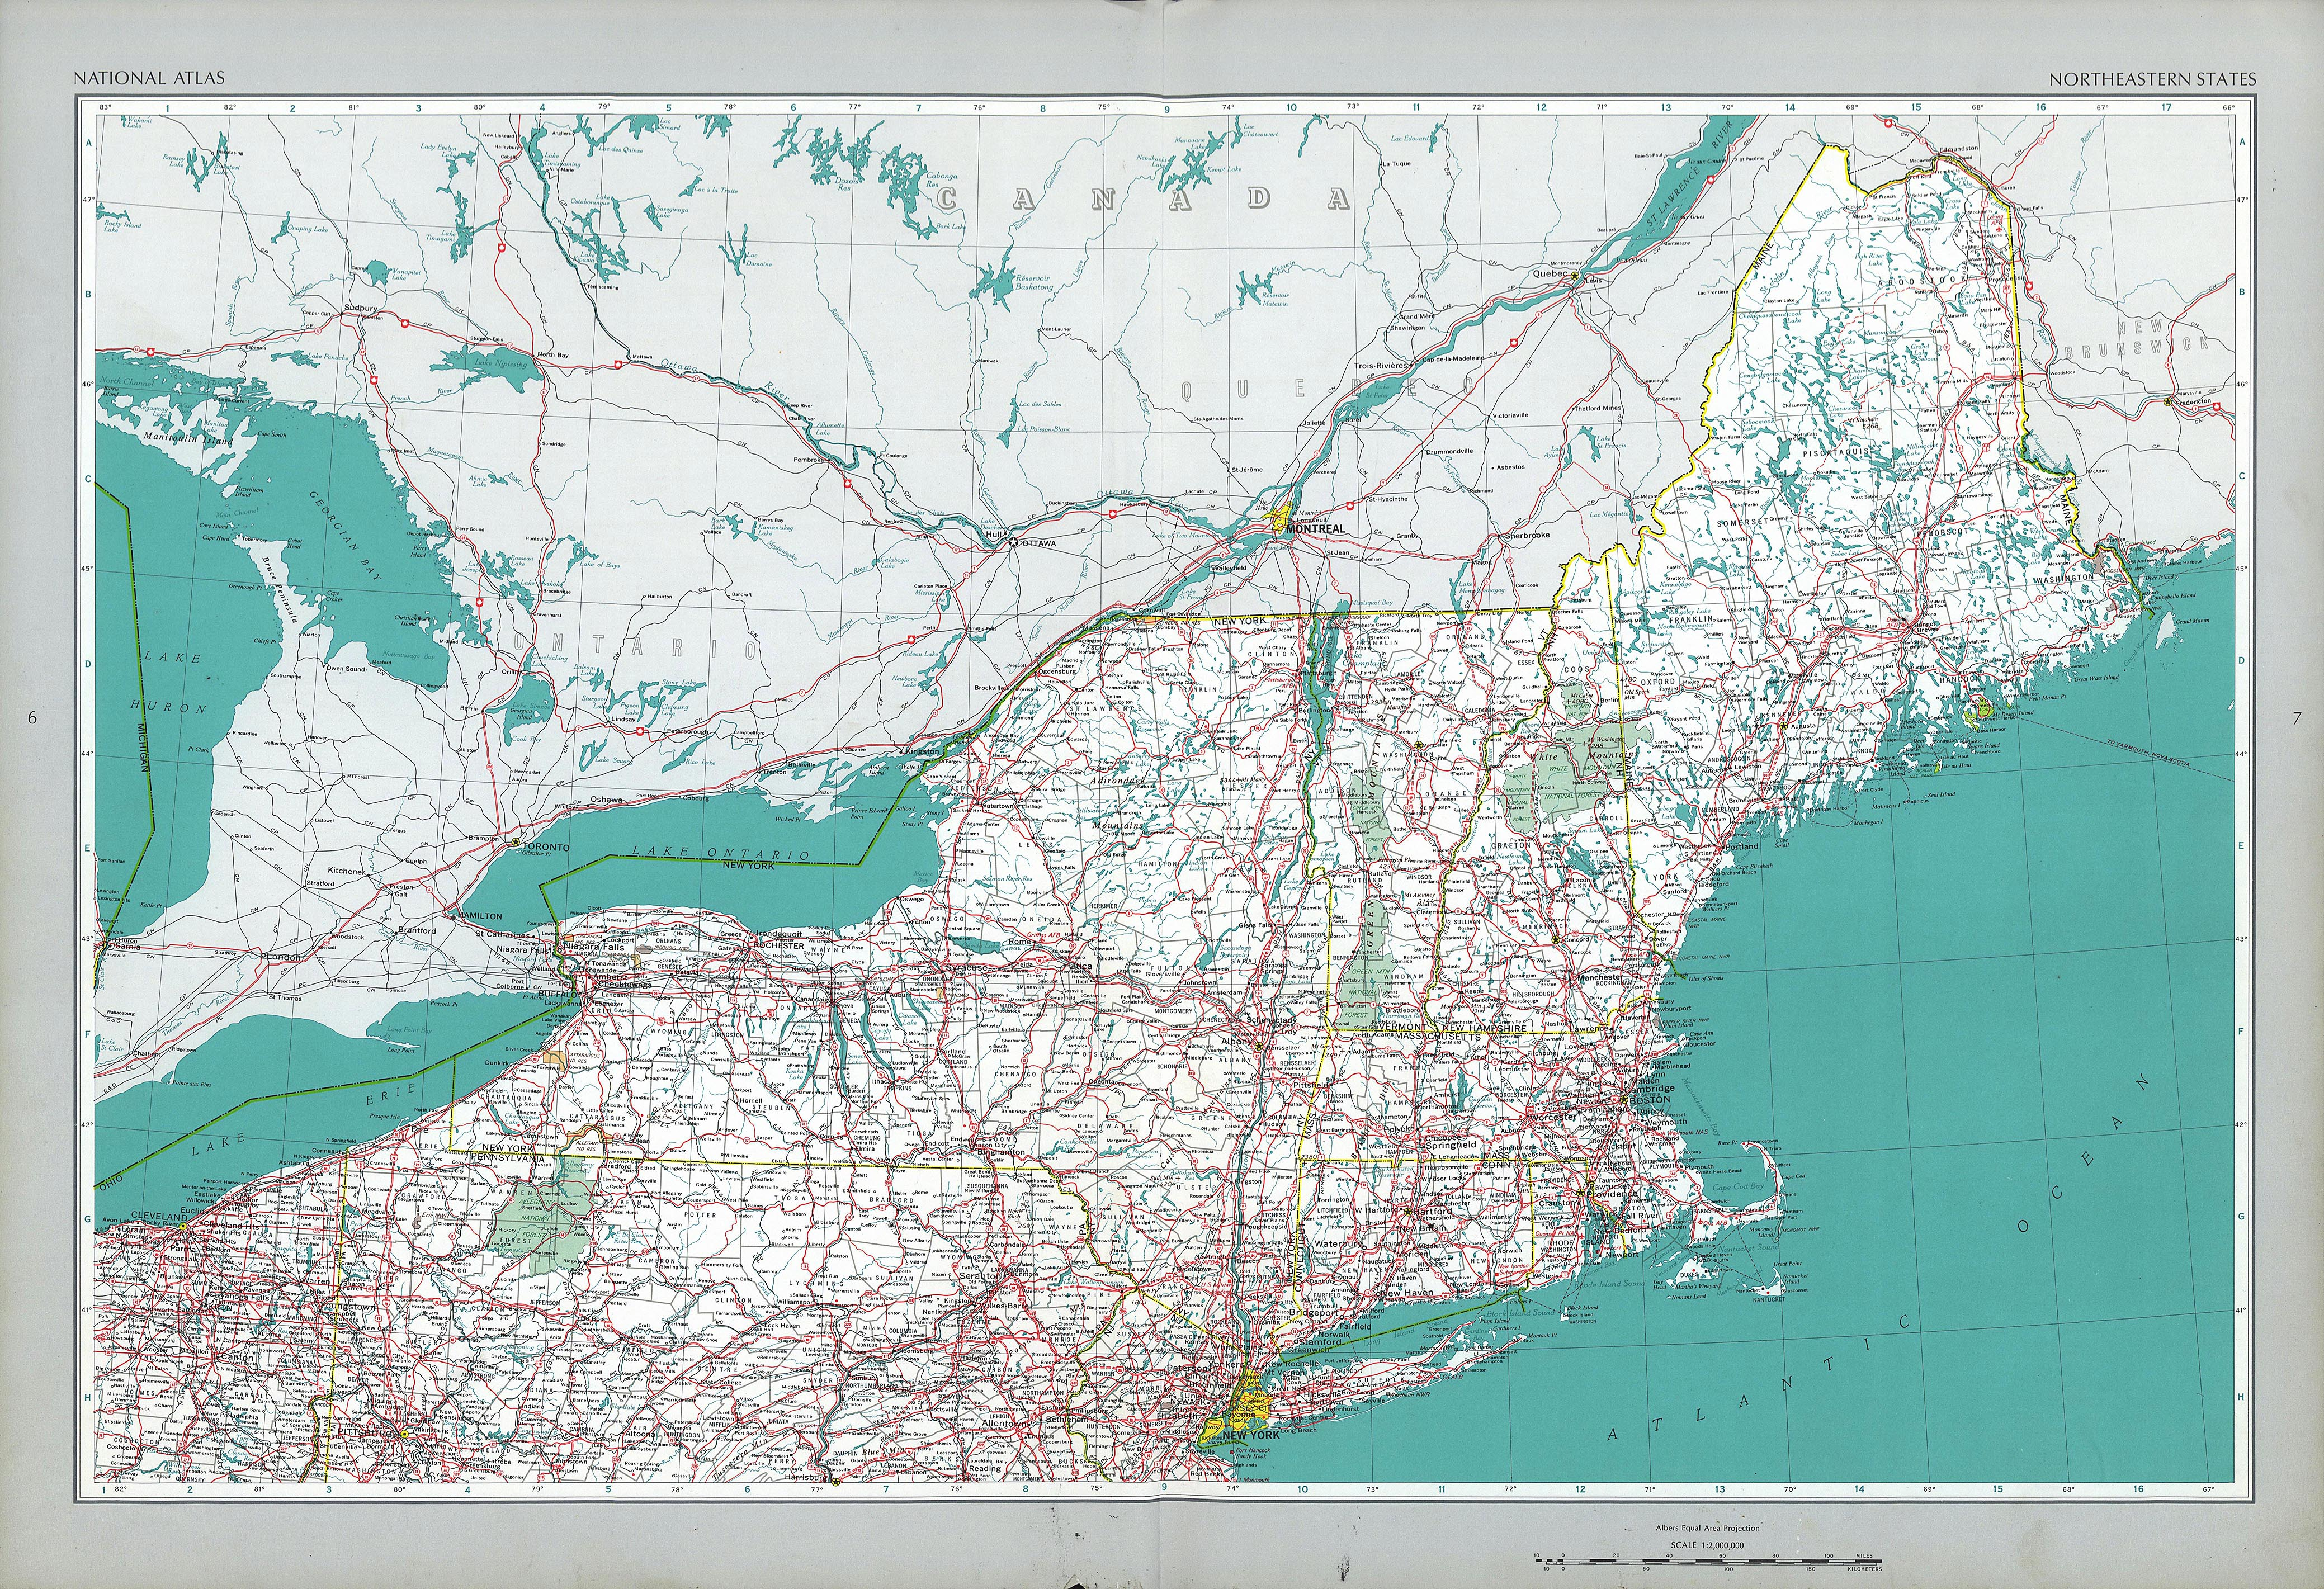 North East Us Map Multi Flow Map - Northeastern usa map